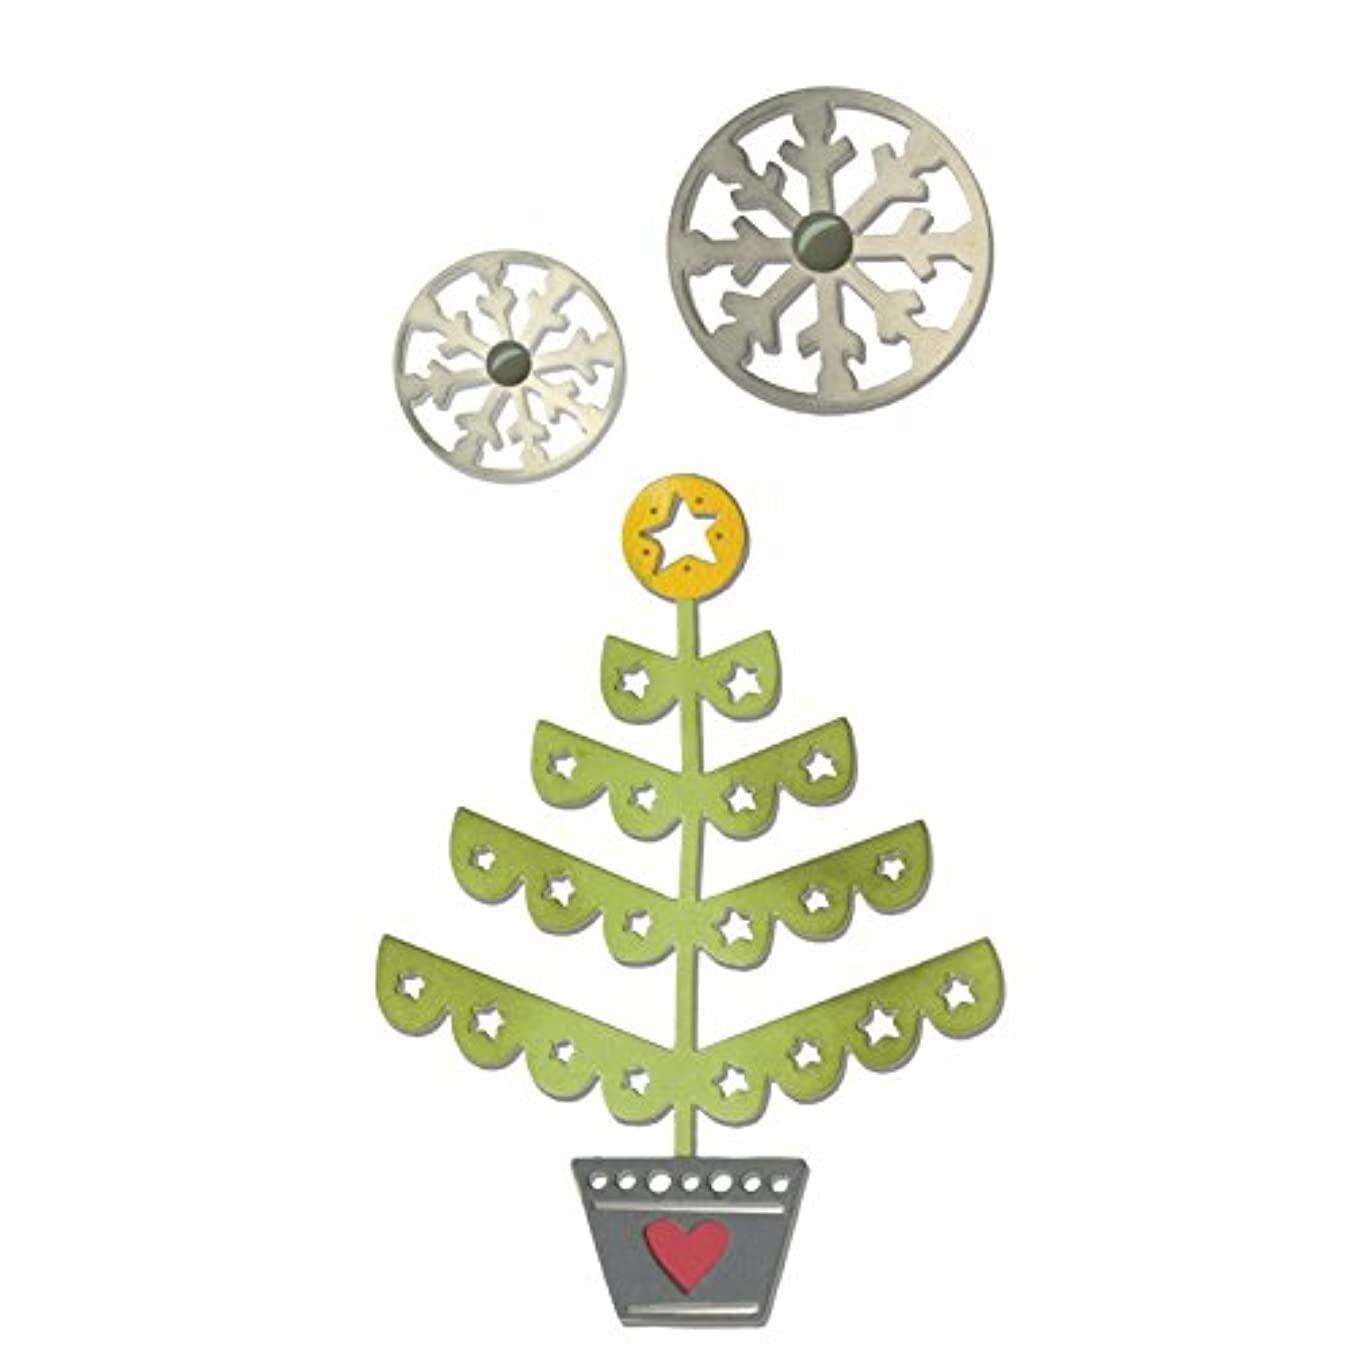 Sizzix 660726 Thinlits Die Set, Christmas Tree and Snowflakes by Debi Potter, 3-Pack